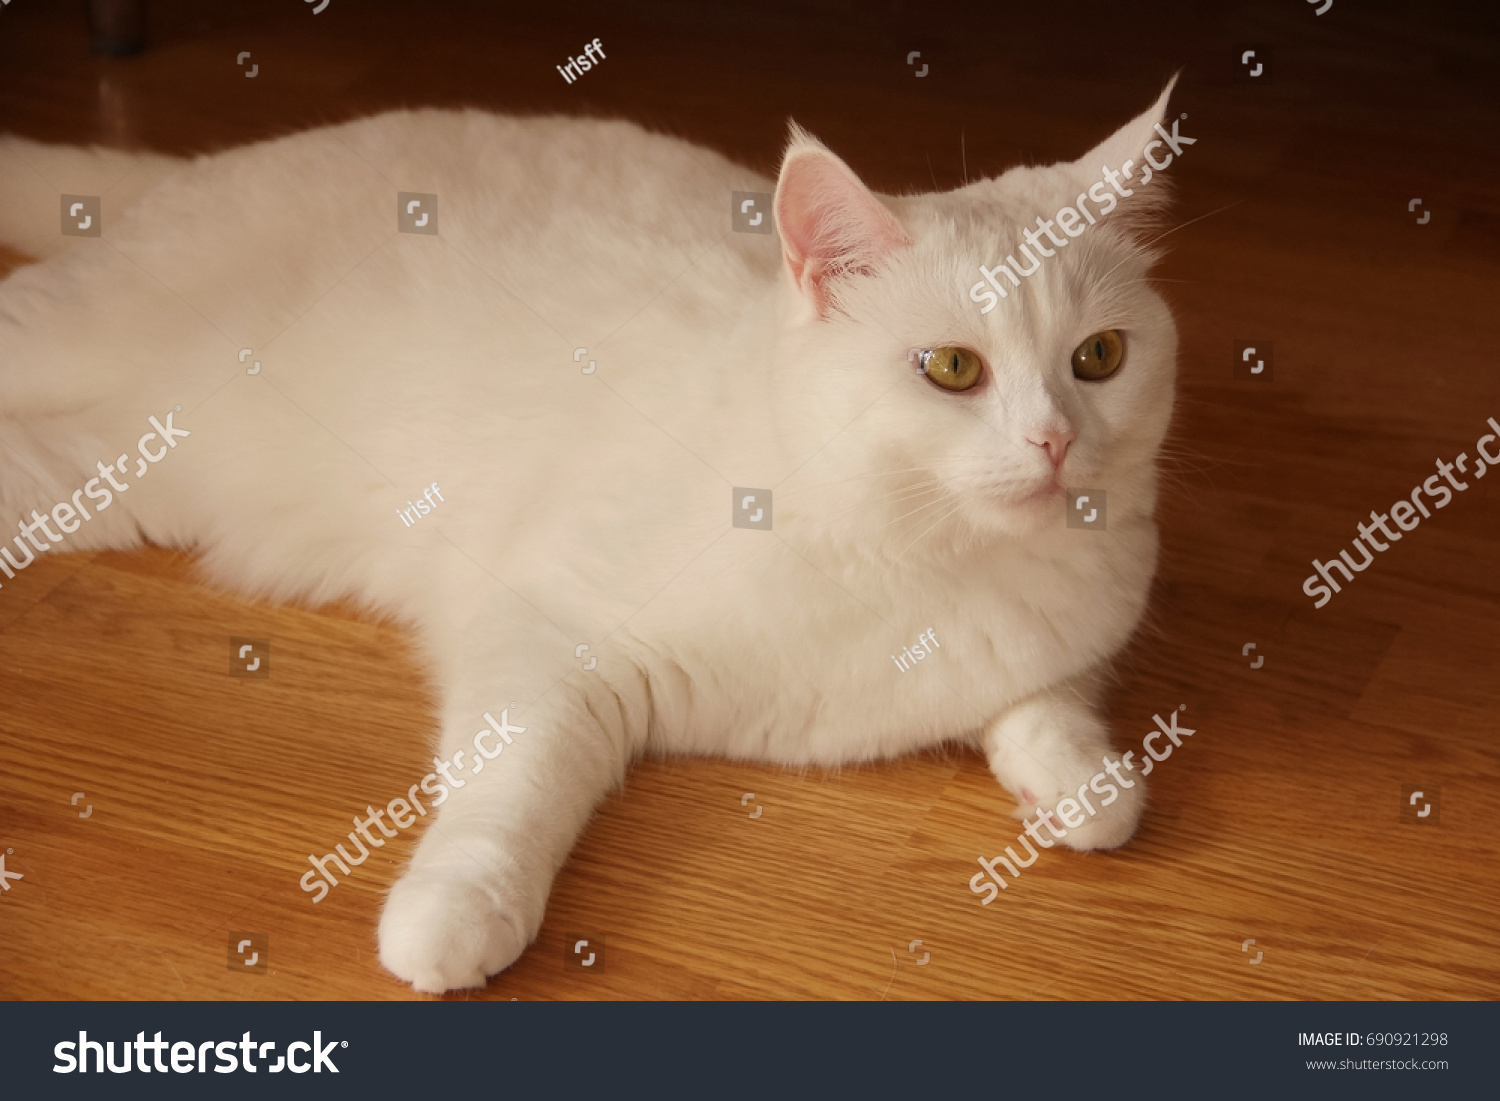 A young white cat, a British breed